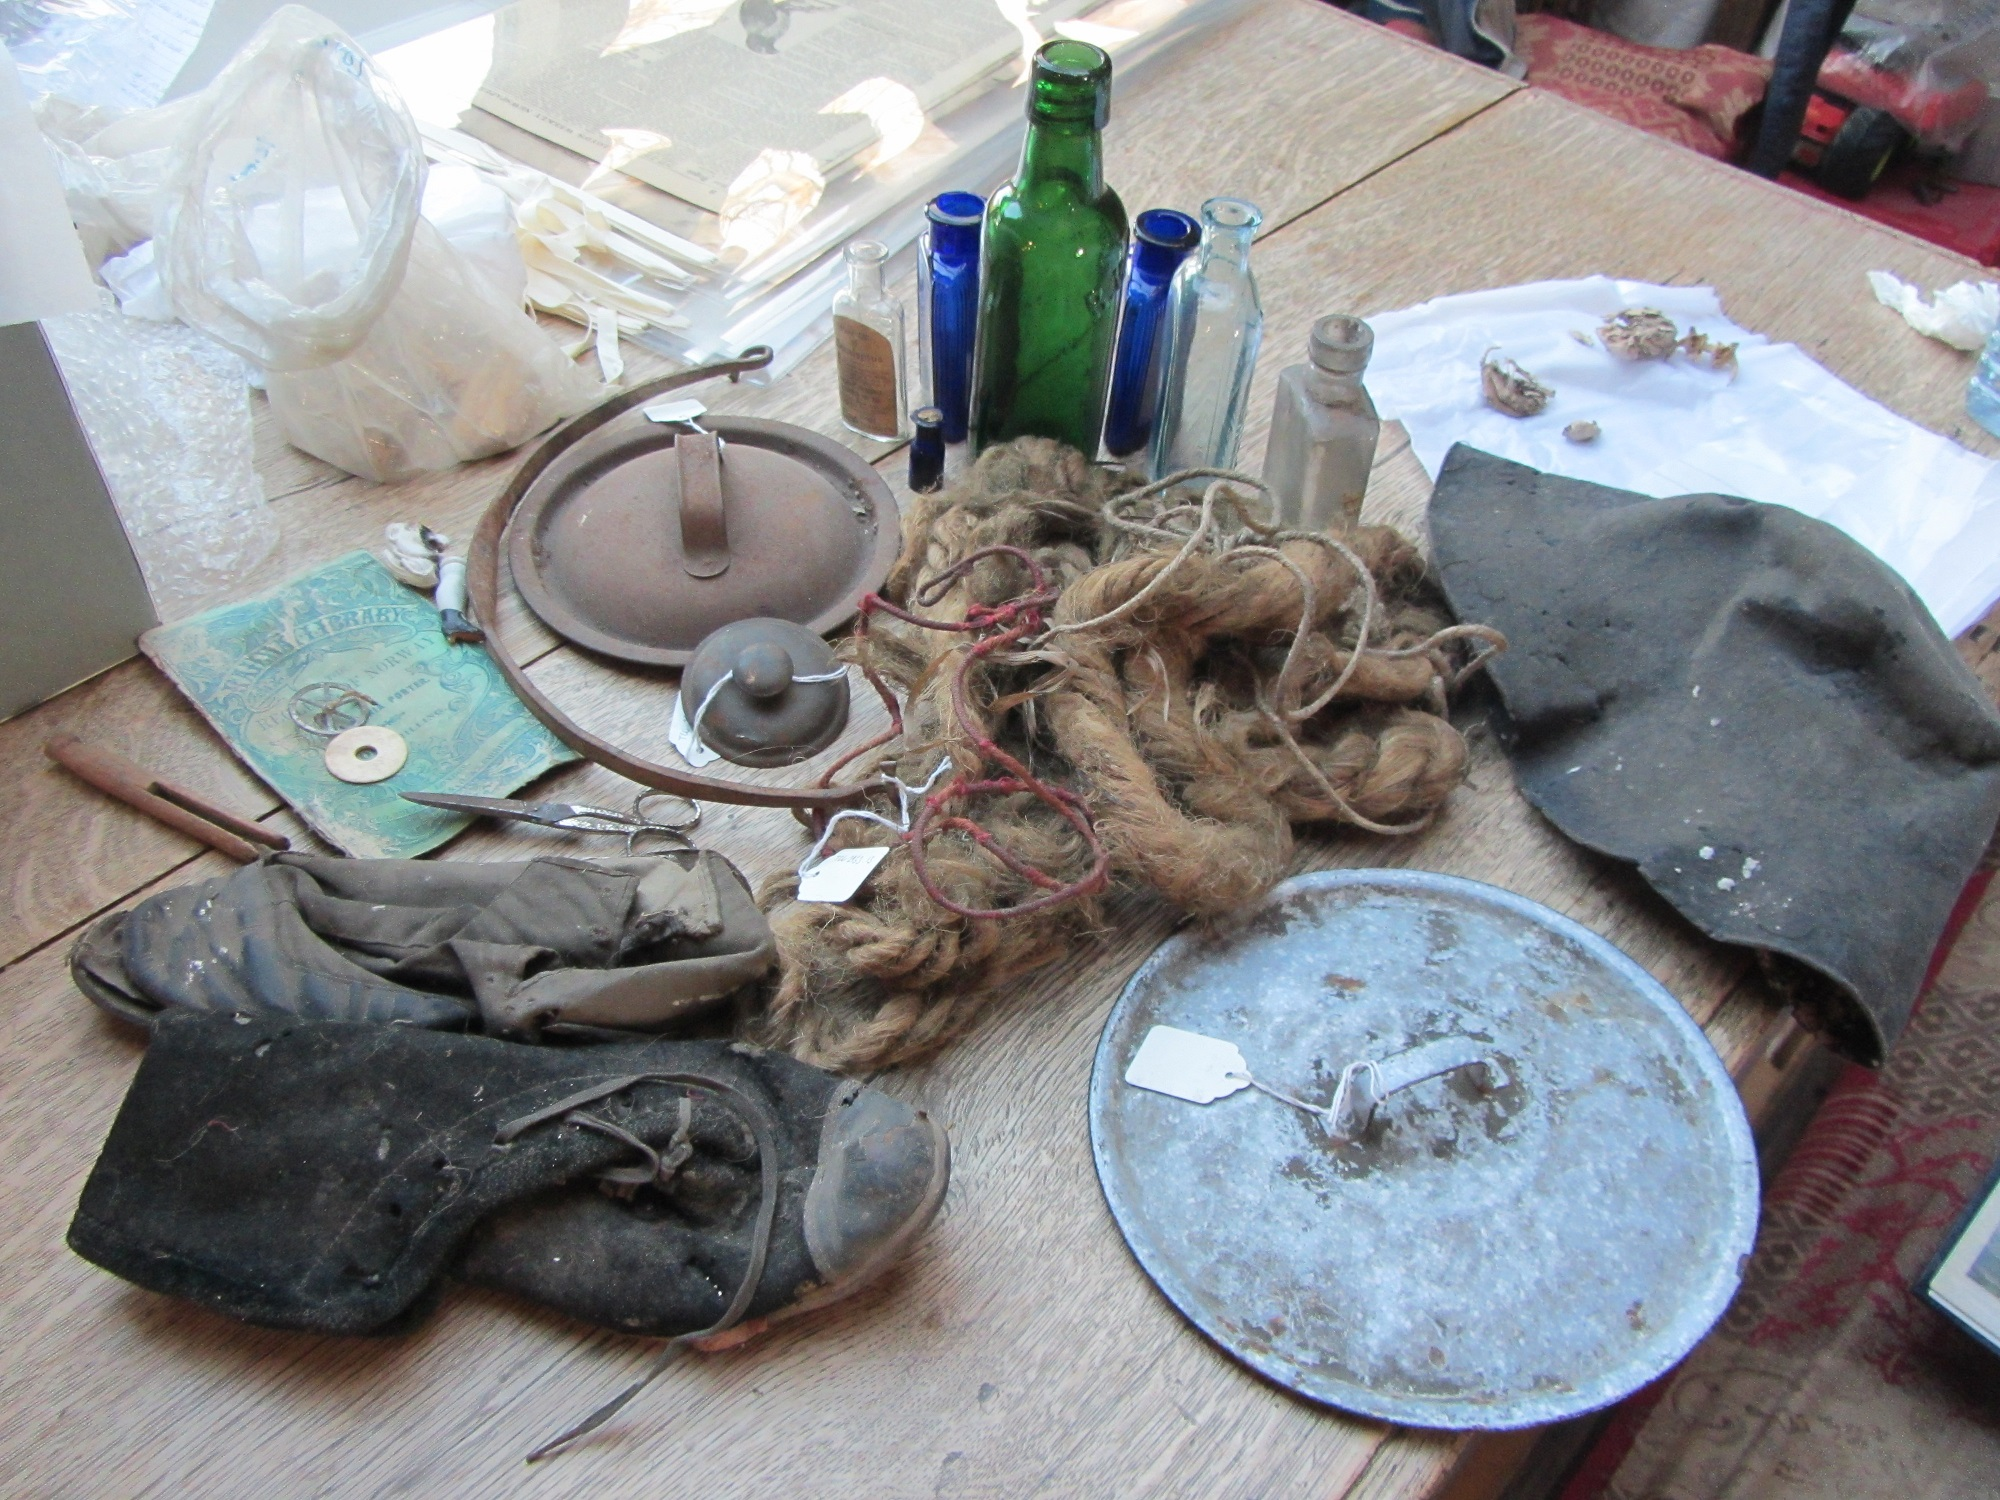 Concealed Revealed objects including hair, a shoe and documents